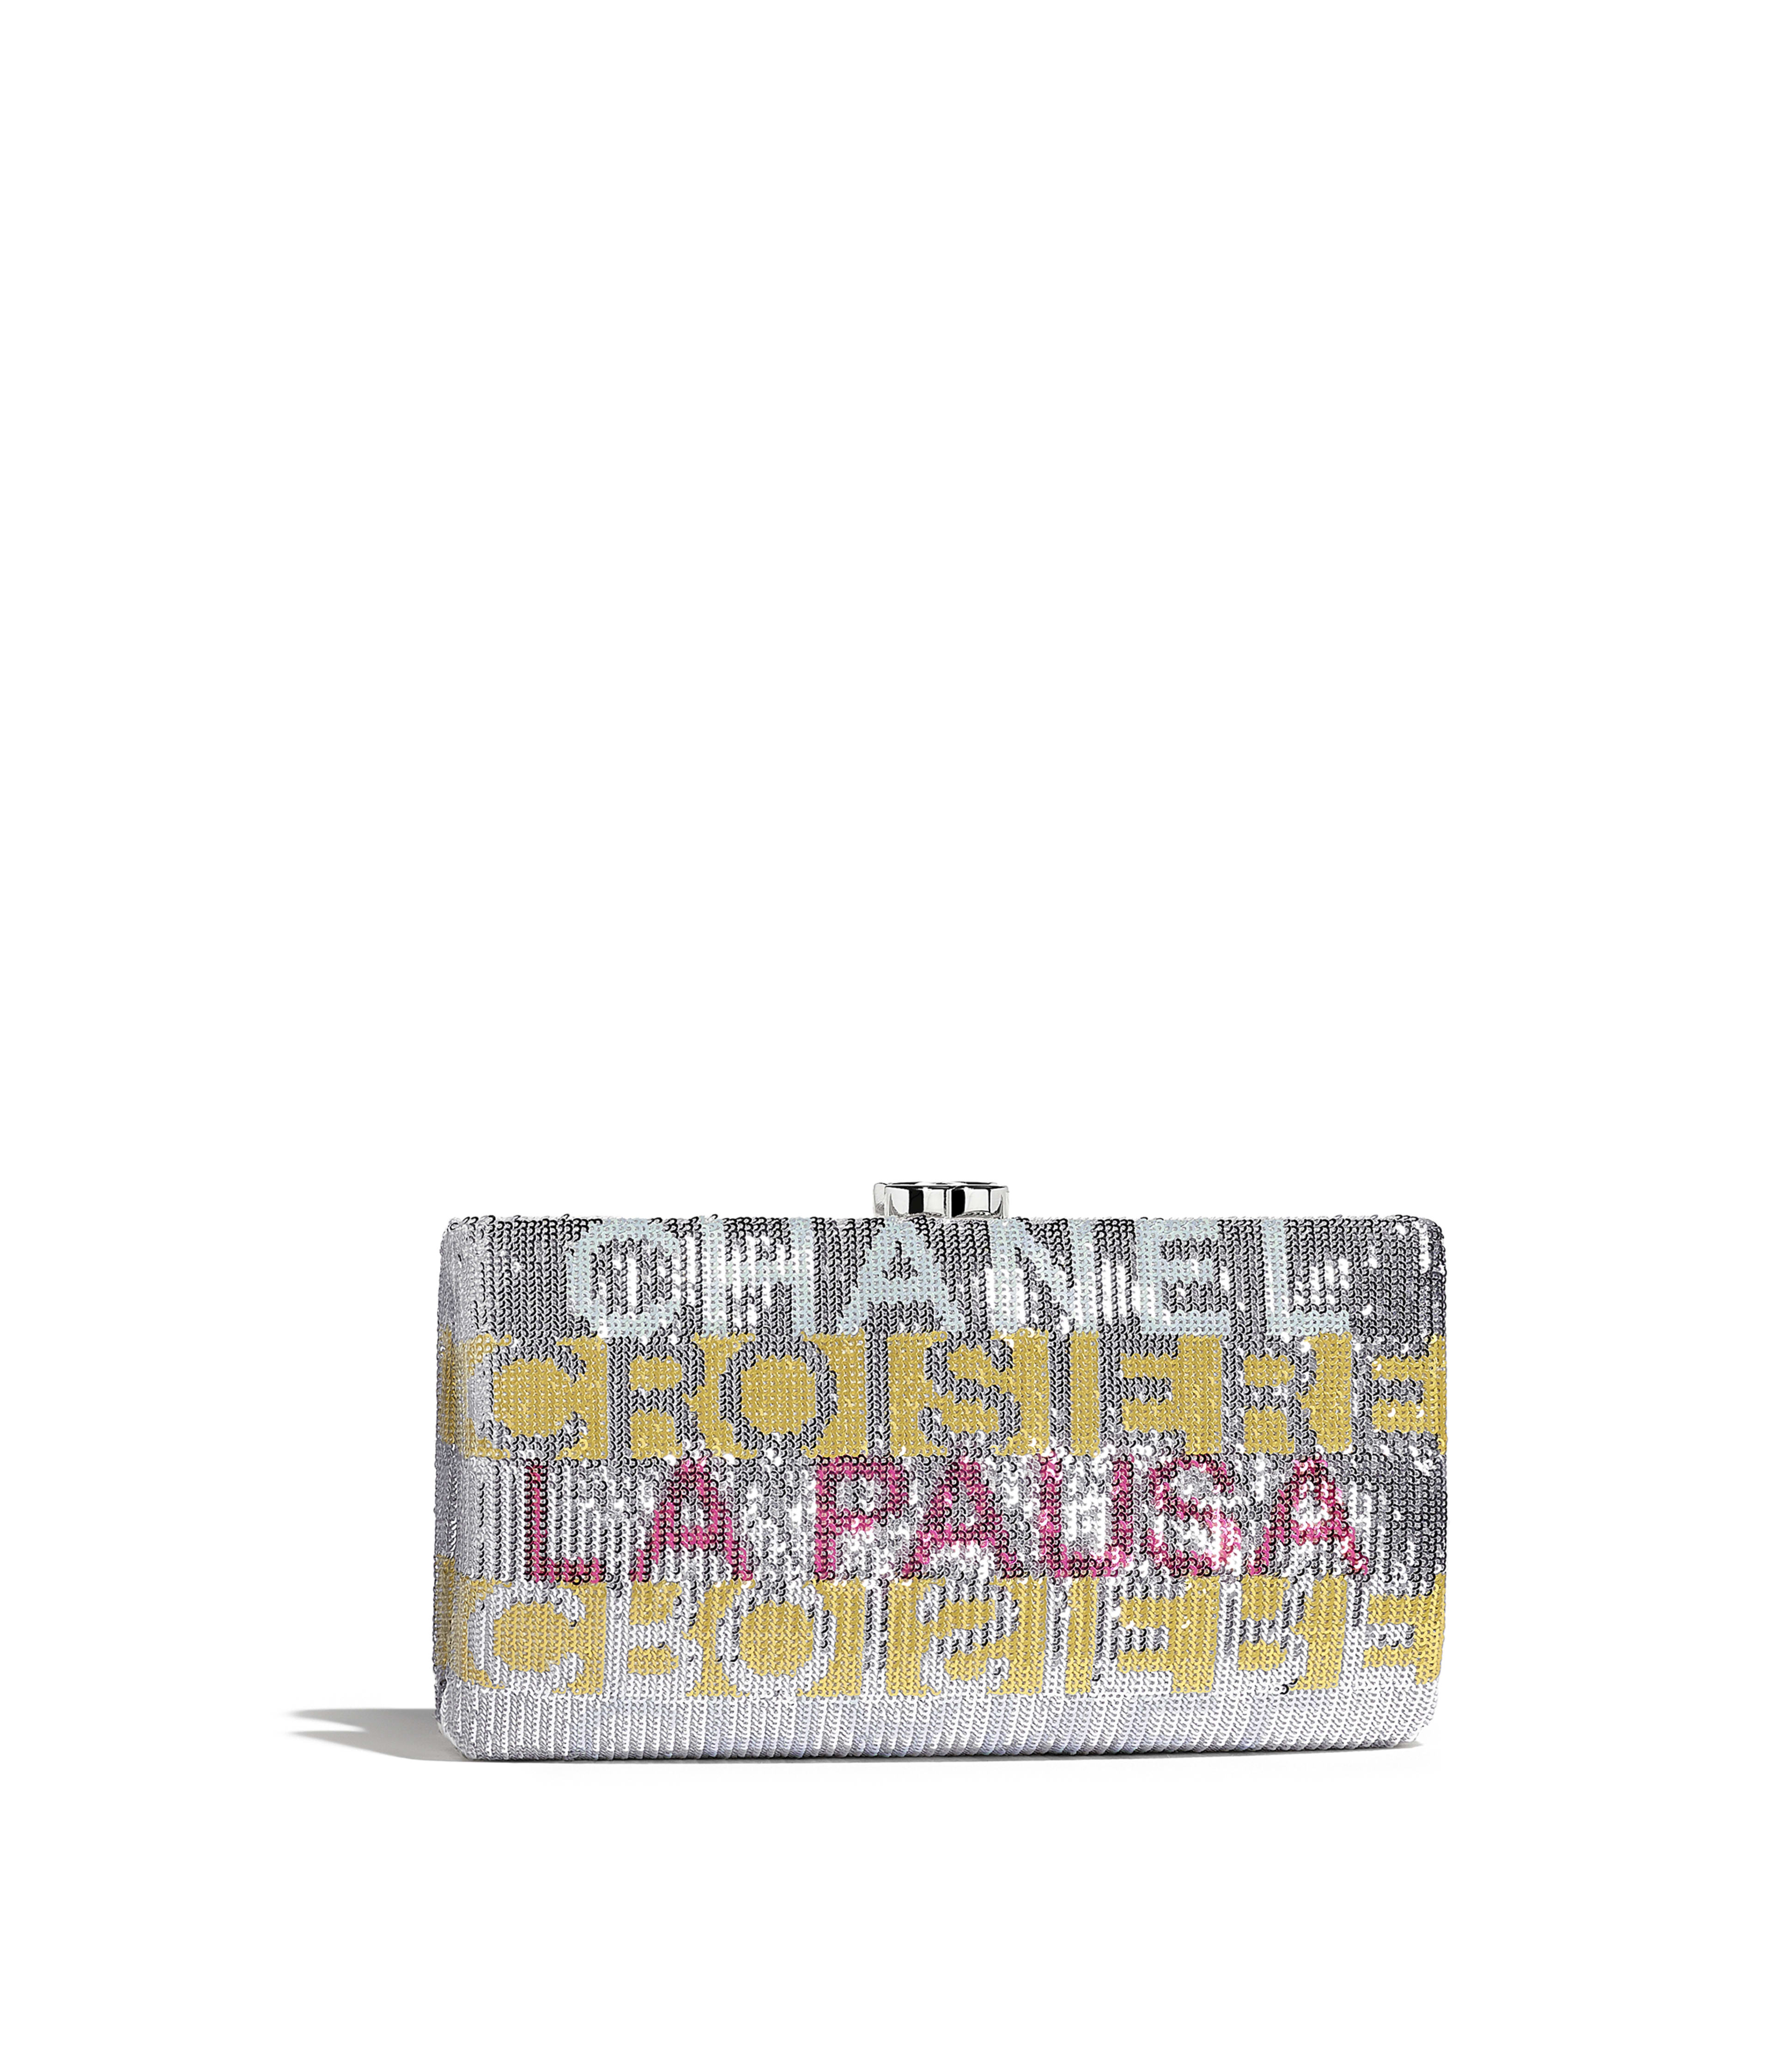 5fb427fbb045 Clutch Embroidered Satin, Sequins & Silver-Tone Metal, Yellow, Pink &  Silver Ref. AS0136Y84131K1322